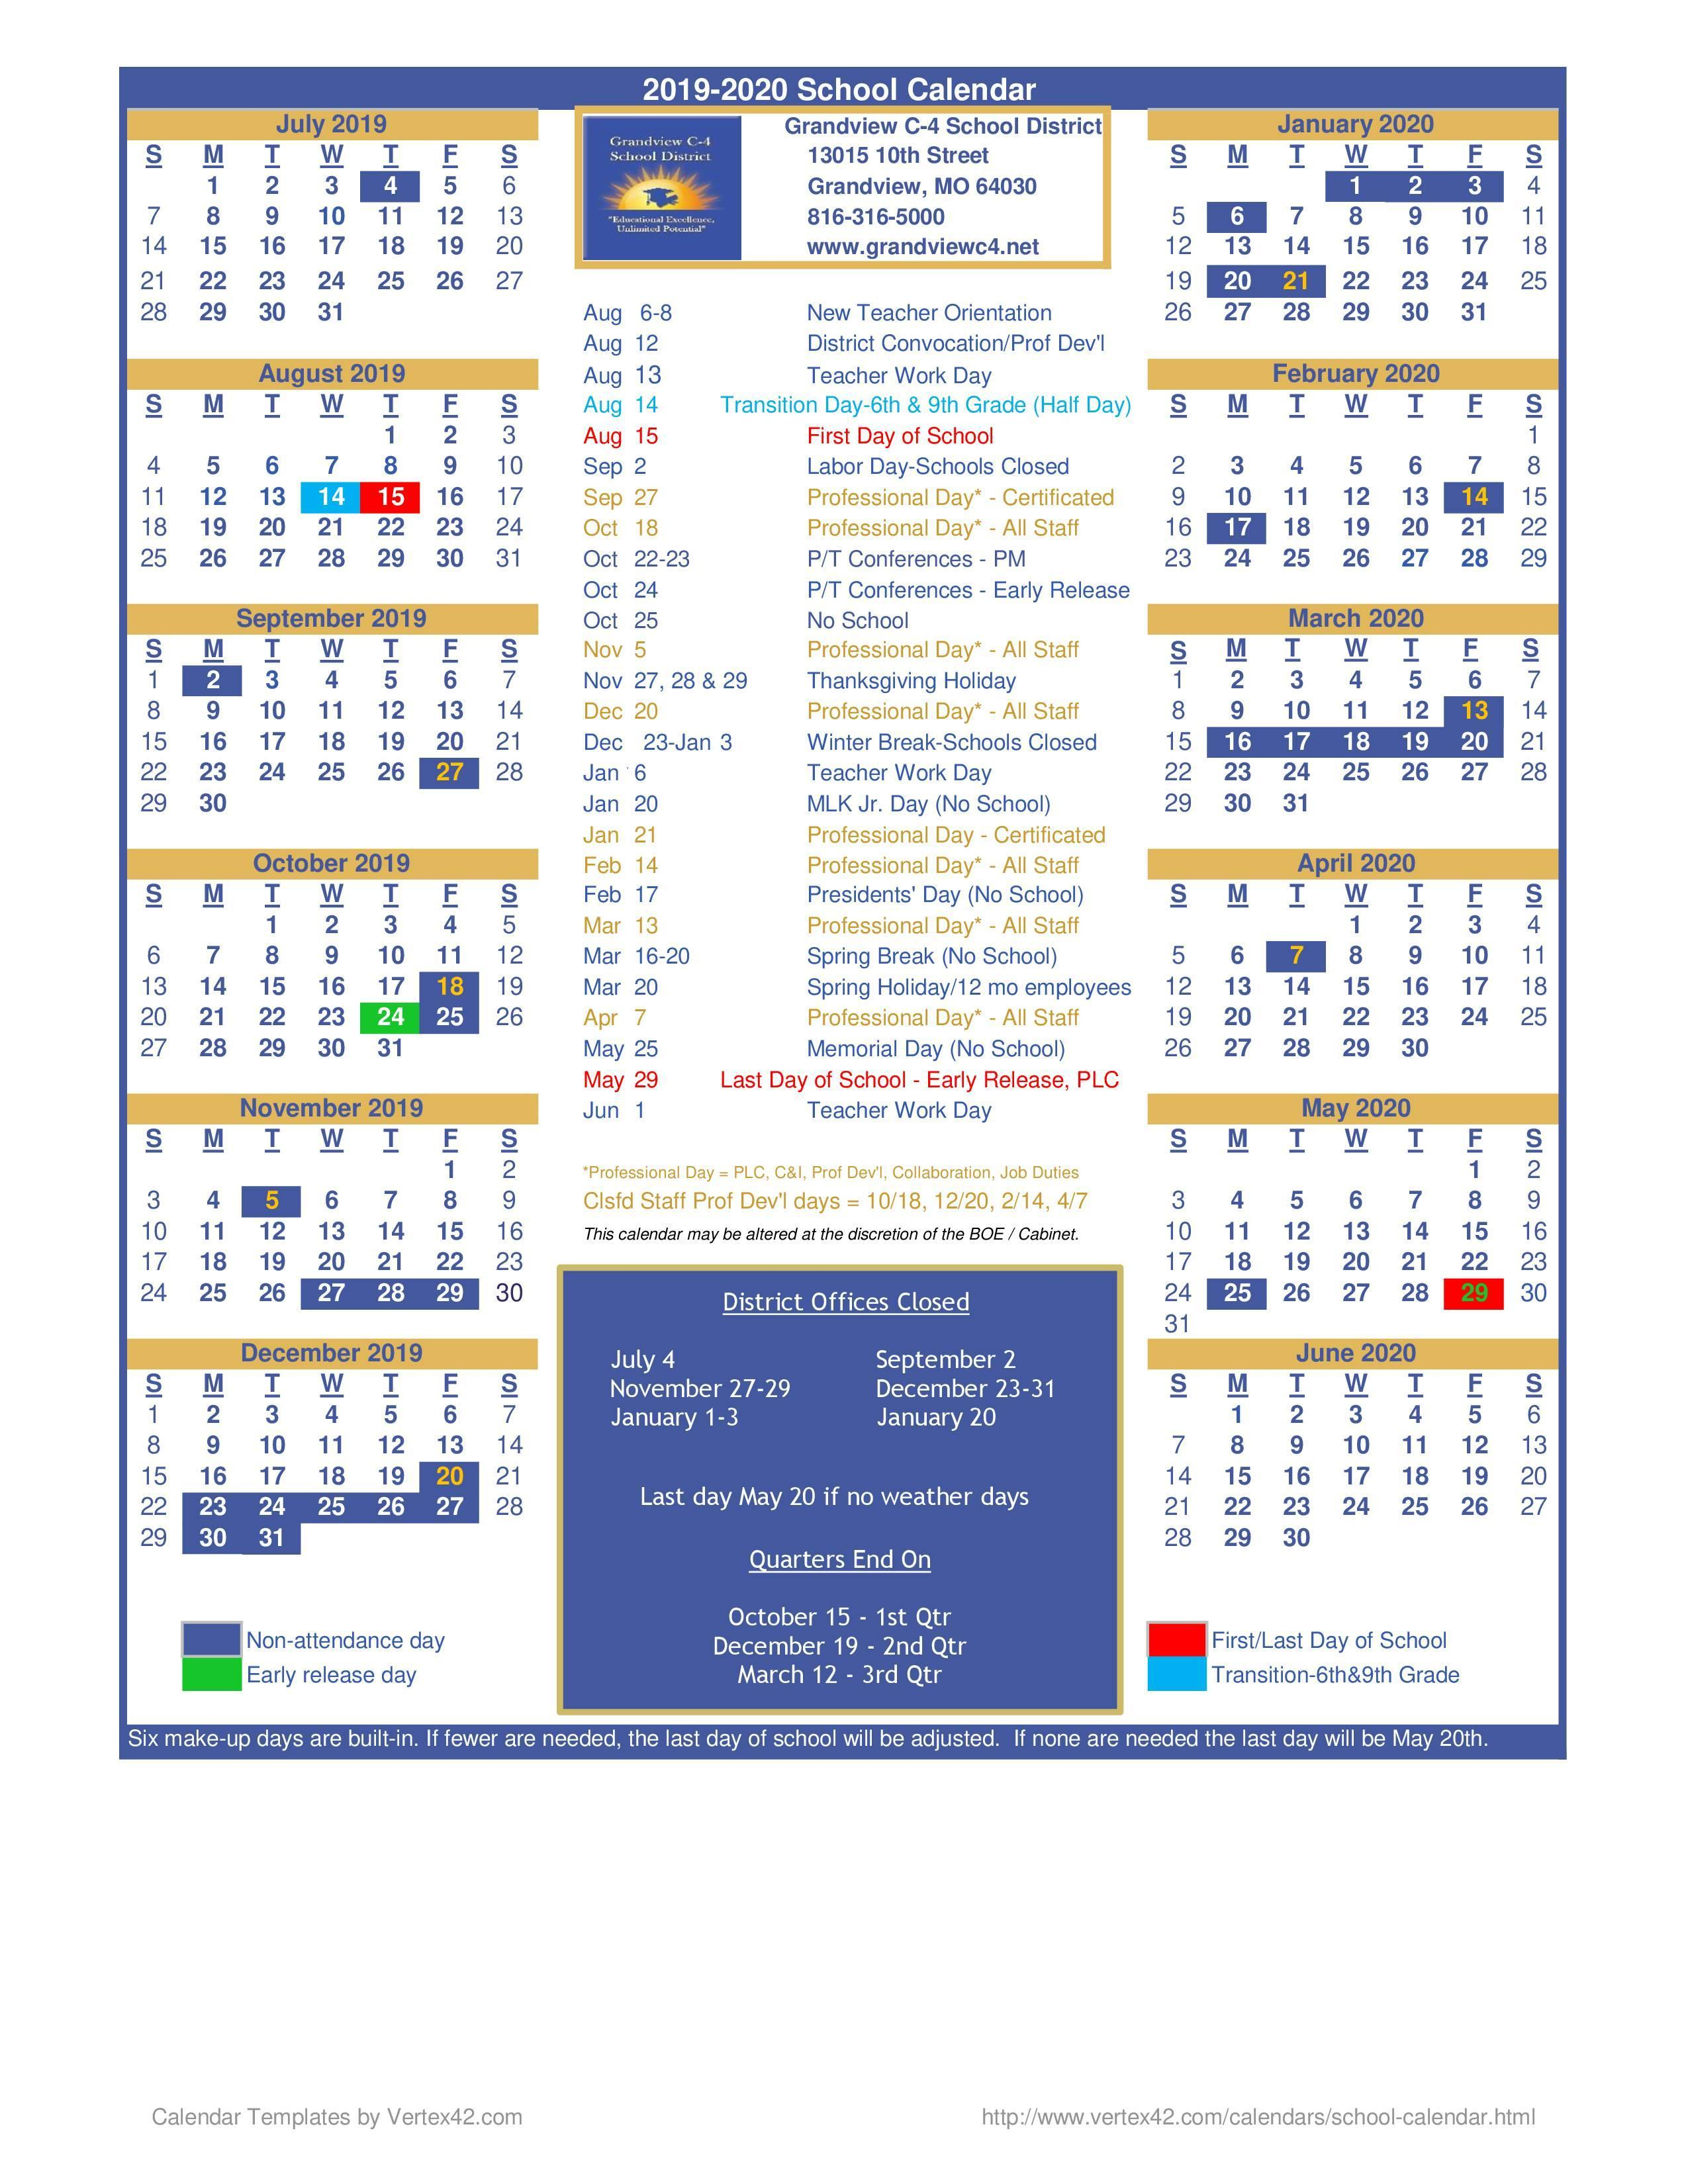 District 51 Calendar 2020 District Calendar – District Calendar – Grandview C 4 School District